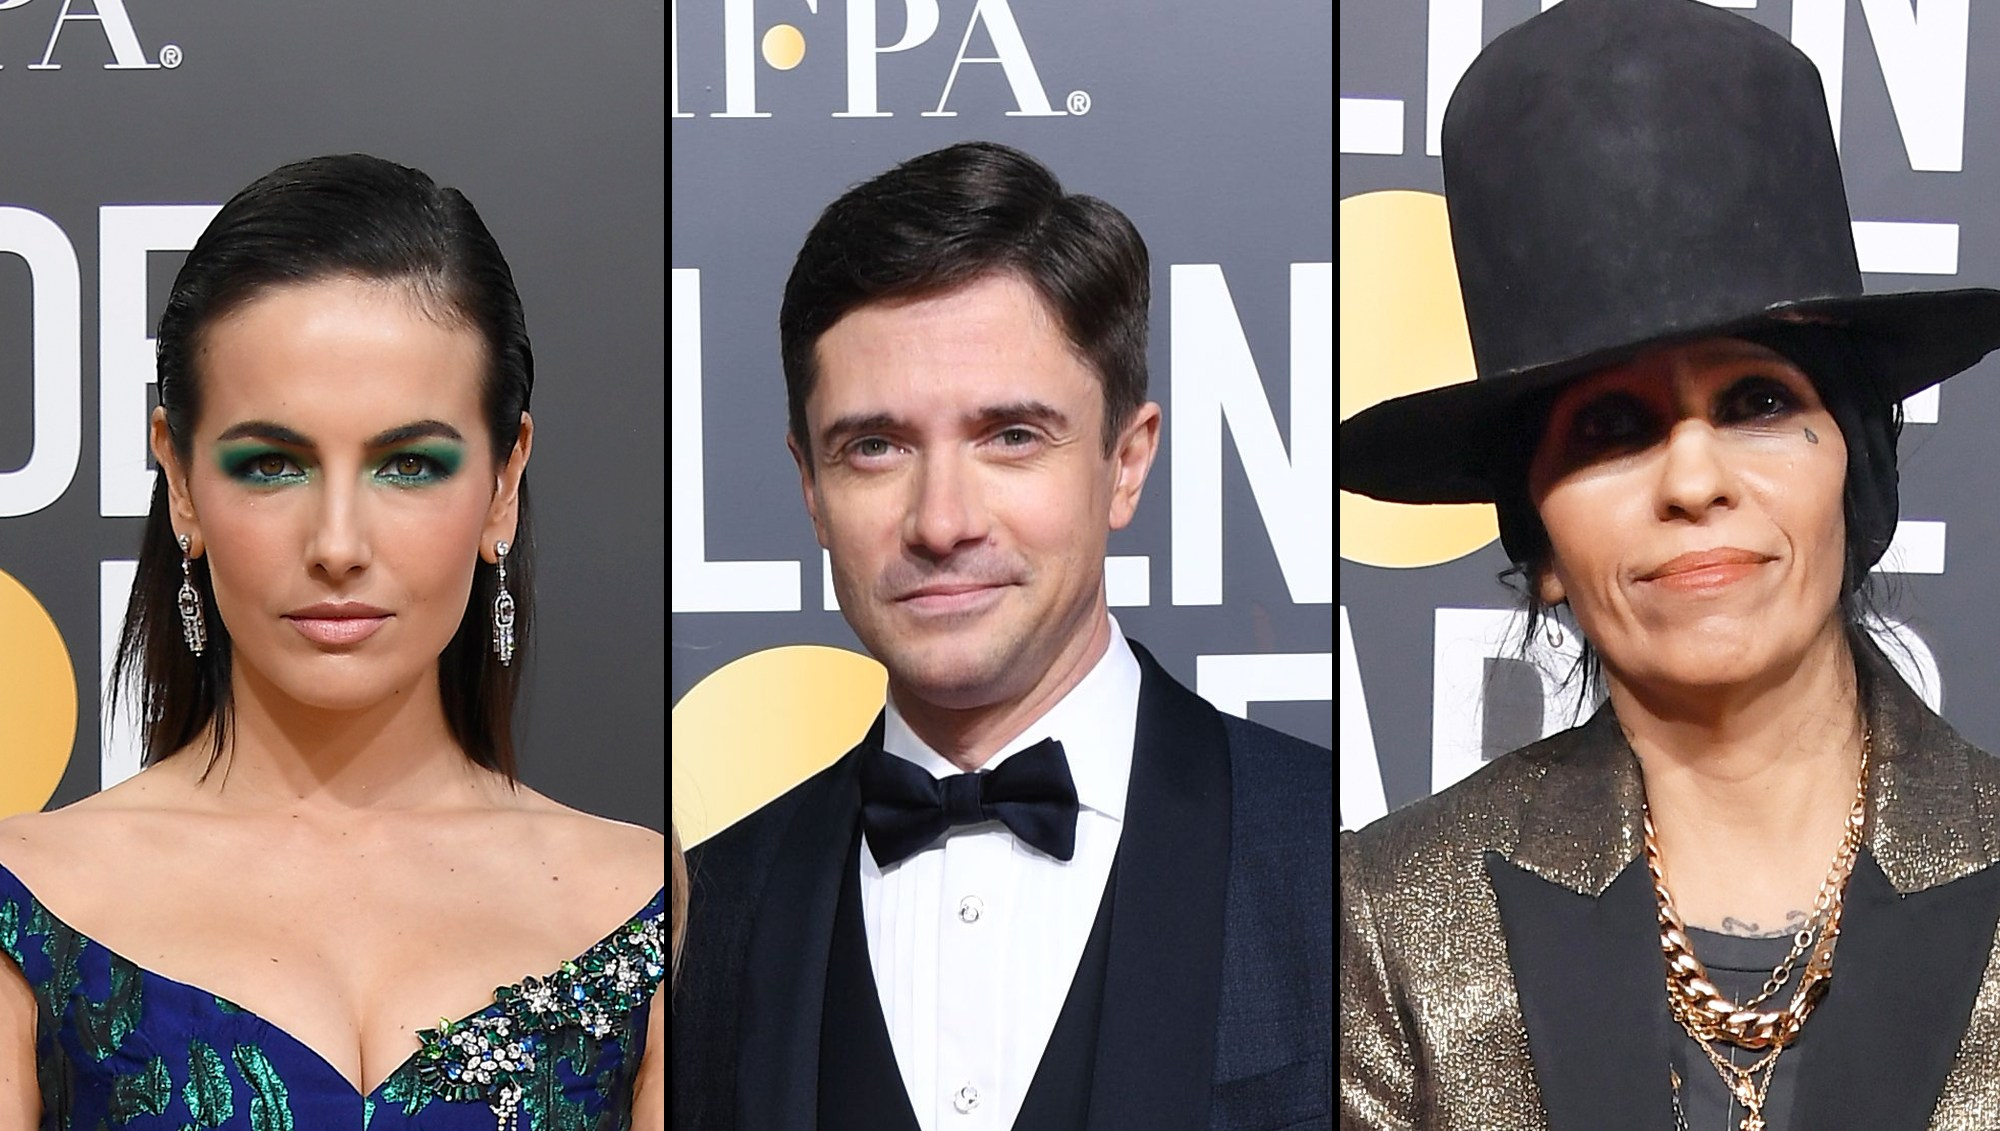 Camilla Belle Topher Grace Linda Perry Golden Globes 2019 Stars Reveal Their Red Carpet Rituals and Hangover Cures